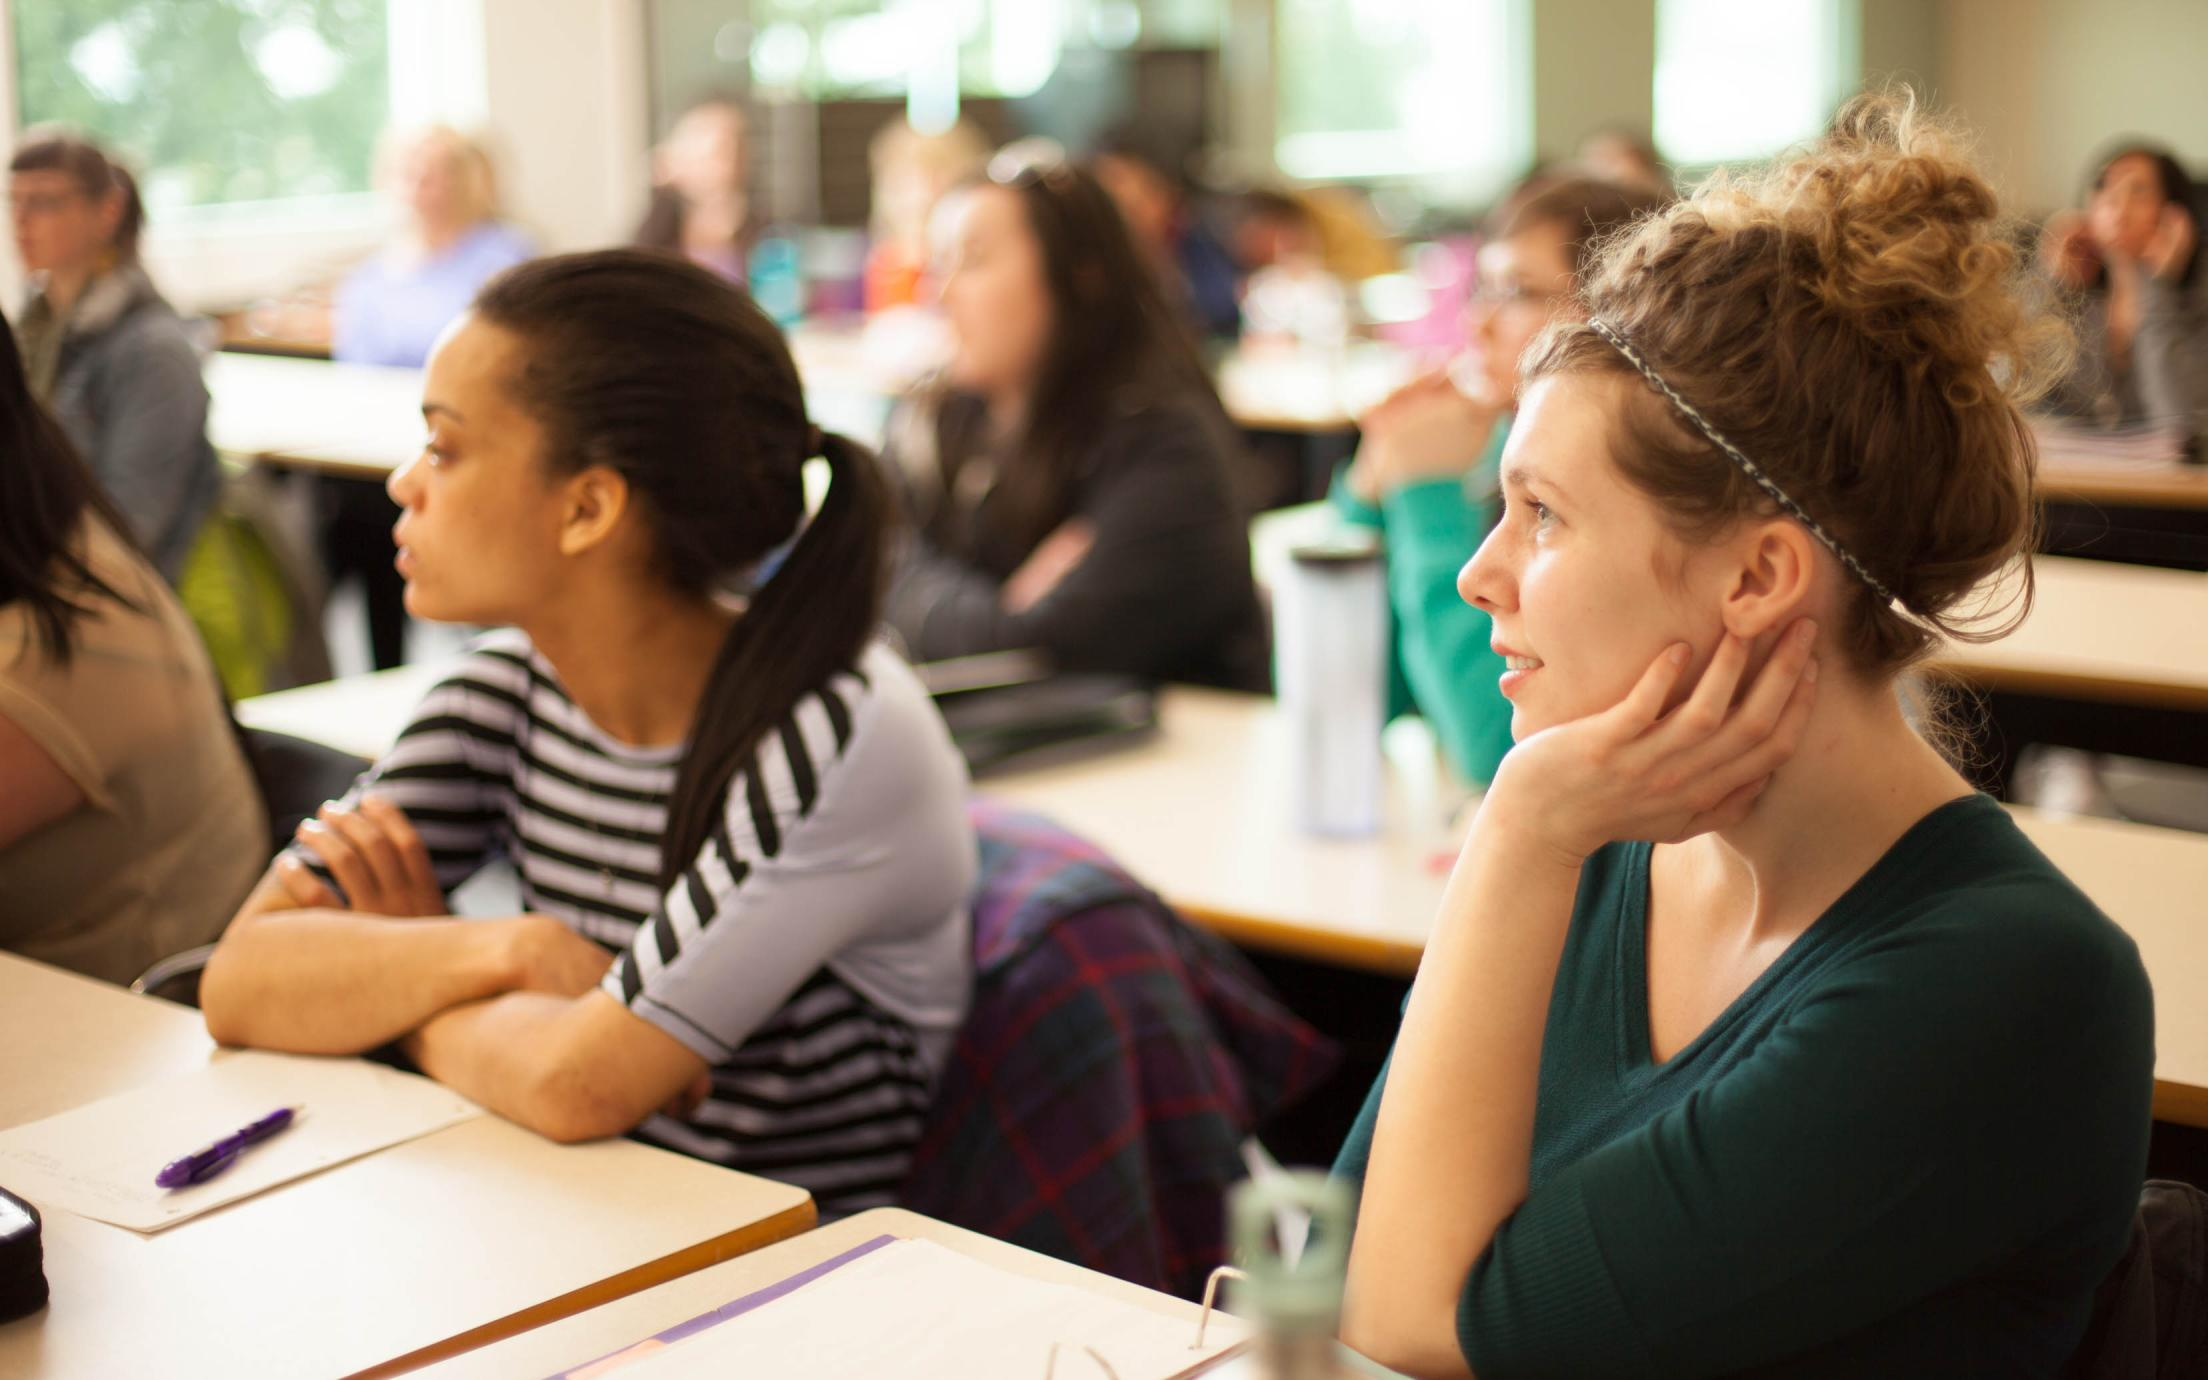 Bachelor of Arts, Major, Minor in Economics students attending a lecture